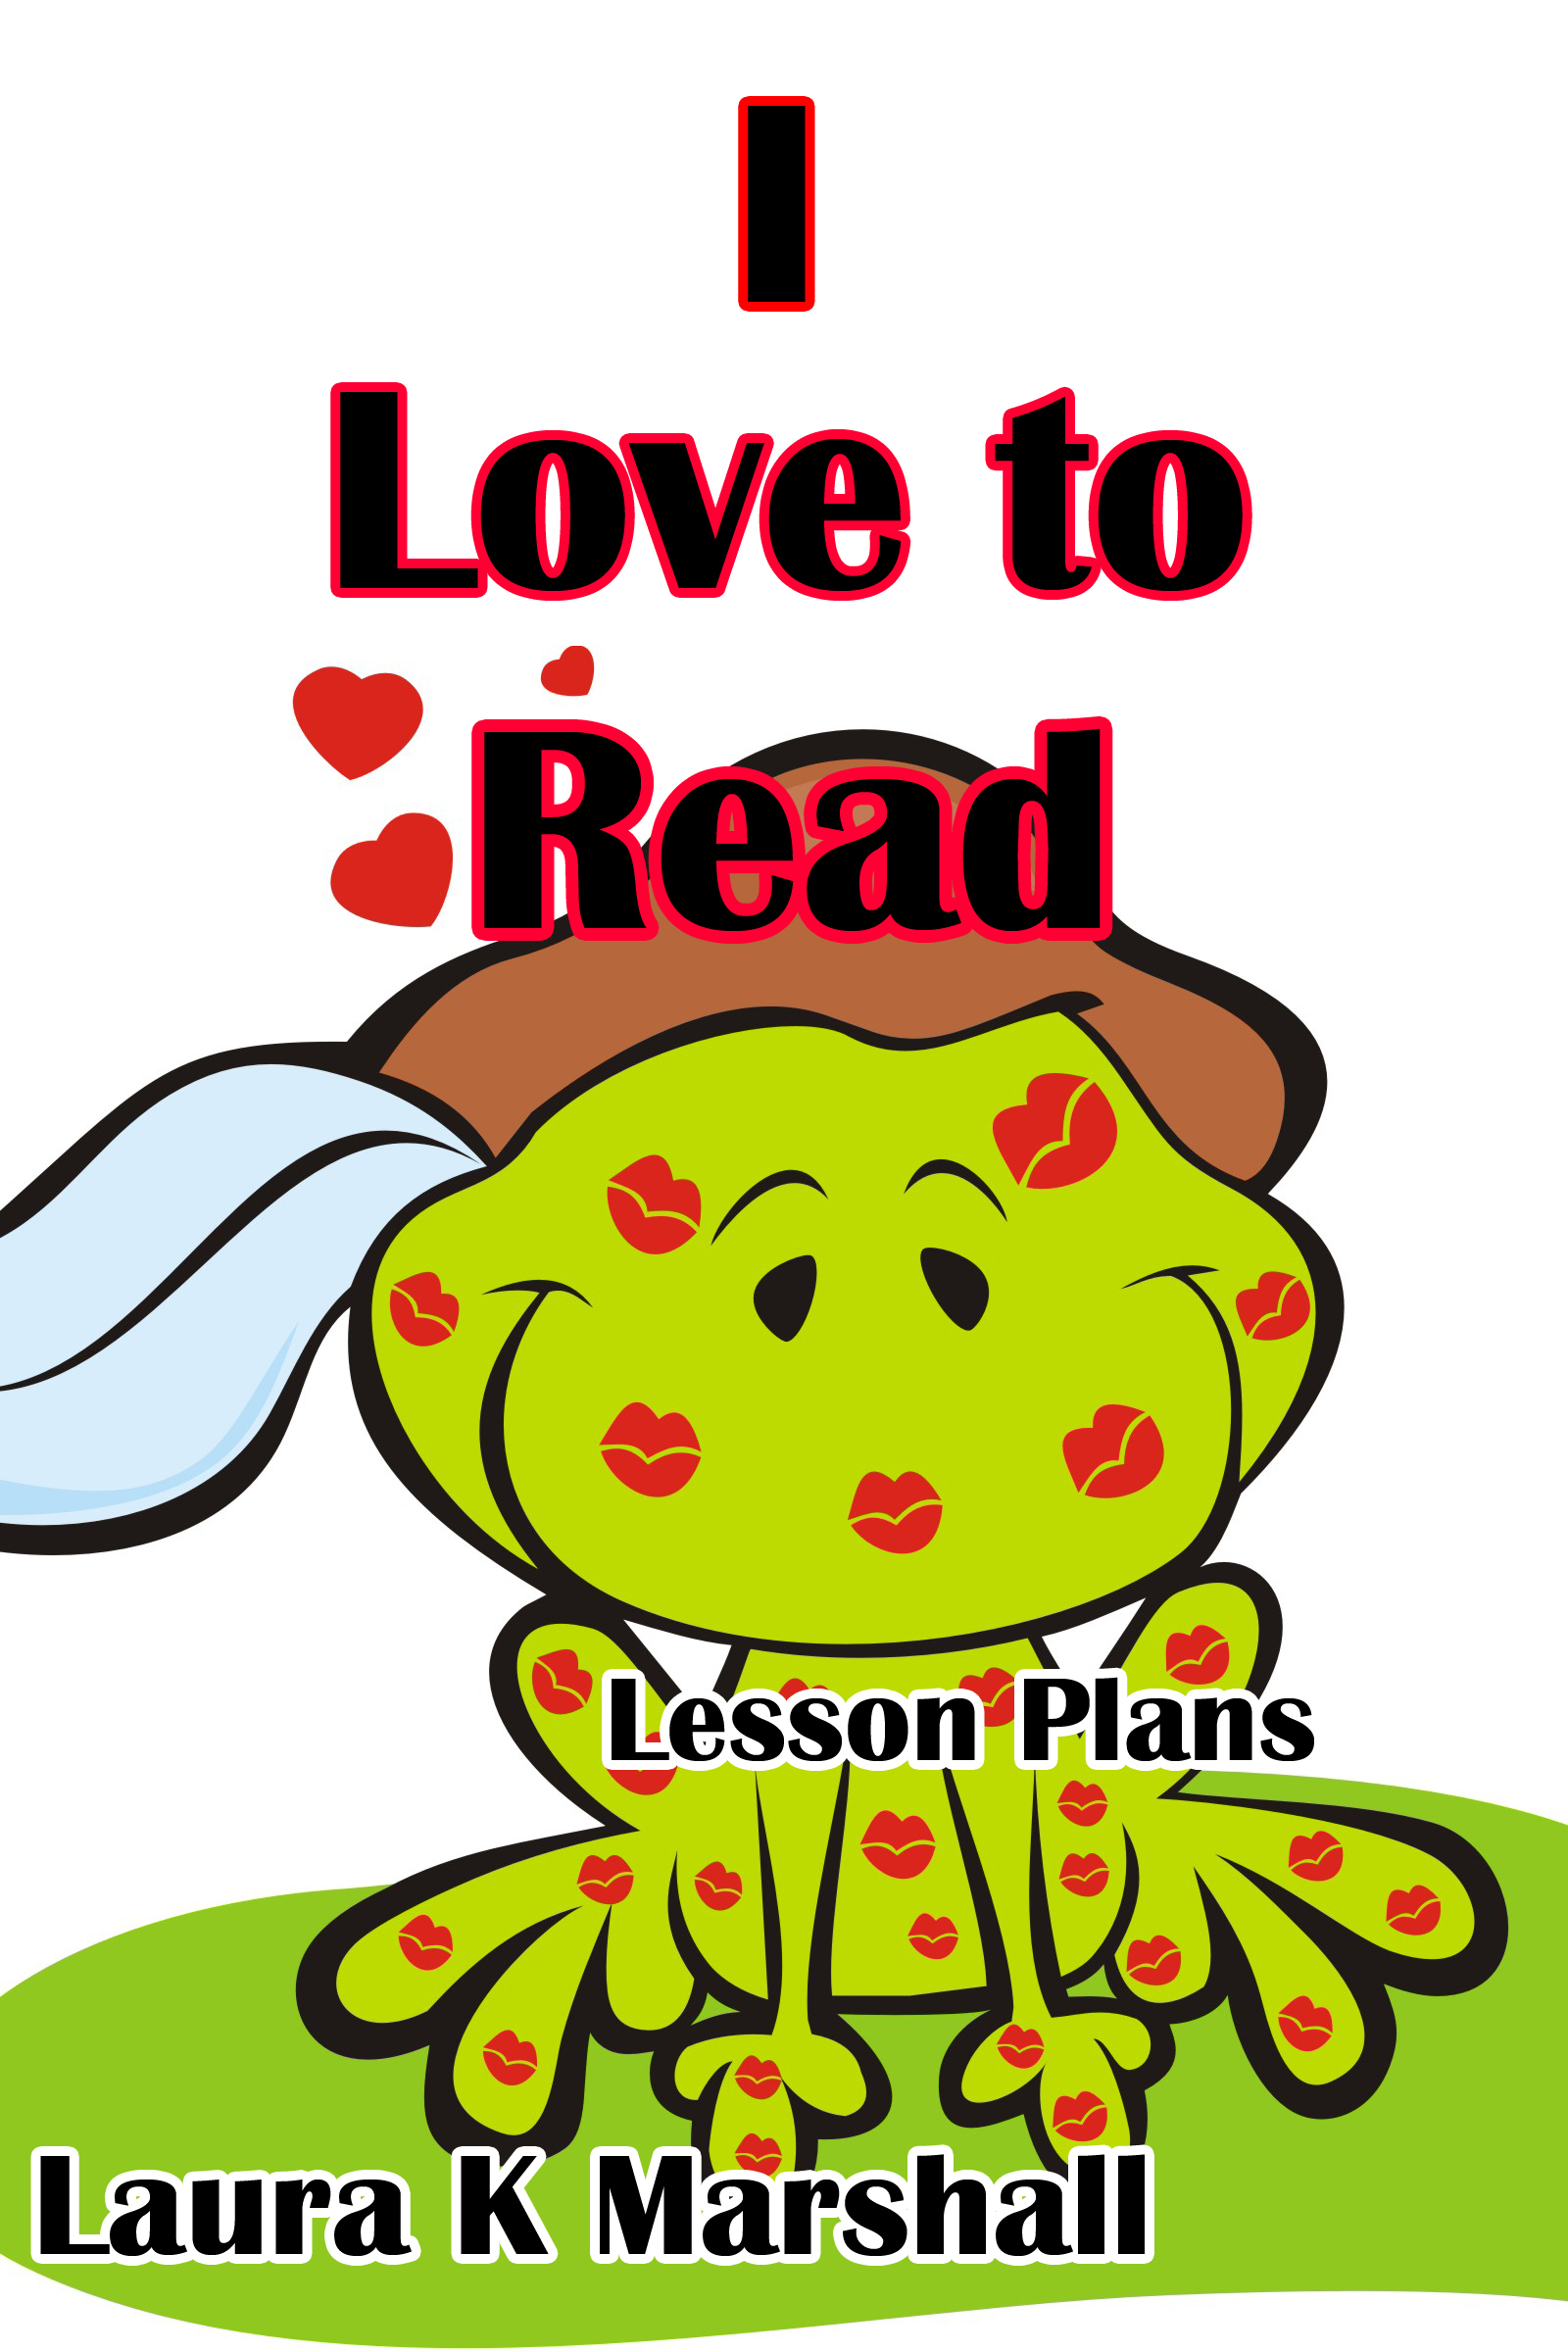 I Love to Read Lesson Plans By: Laura Marshall